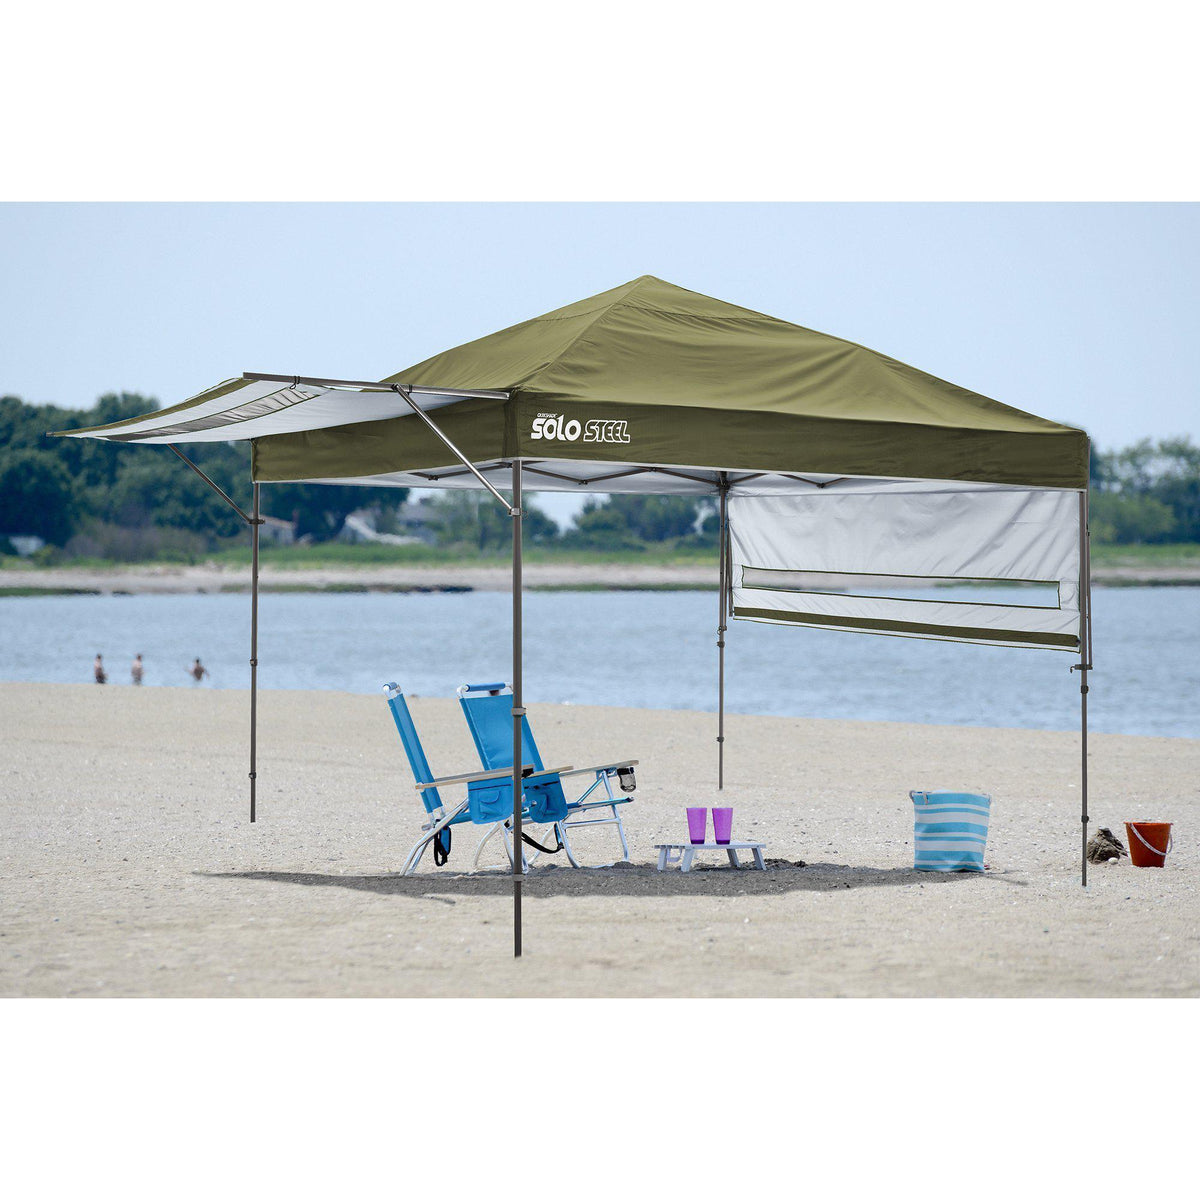 Quik Shade Solo Steel 170 10 x 17 ft. Straight Leg Canopy, Olive